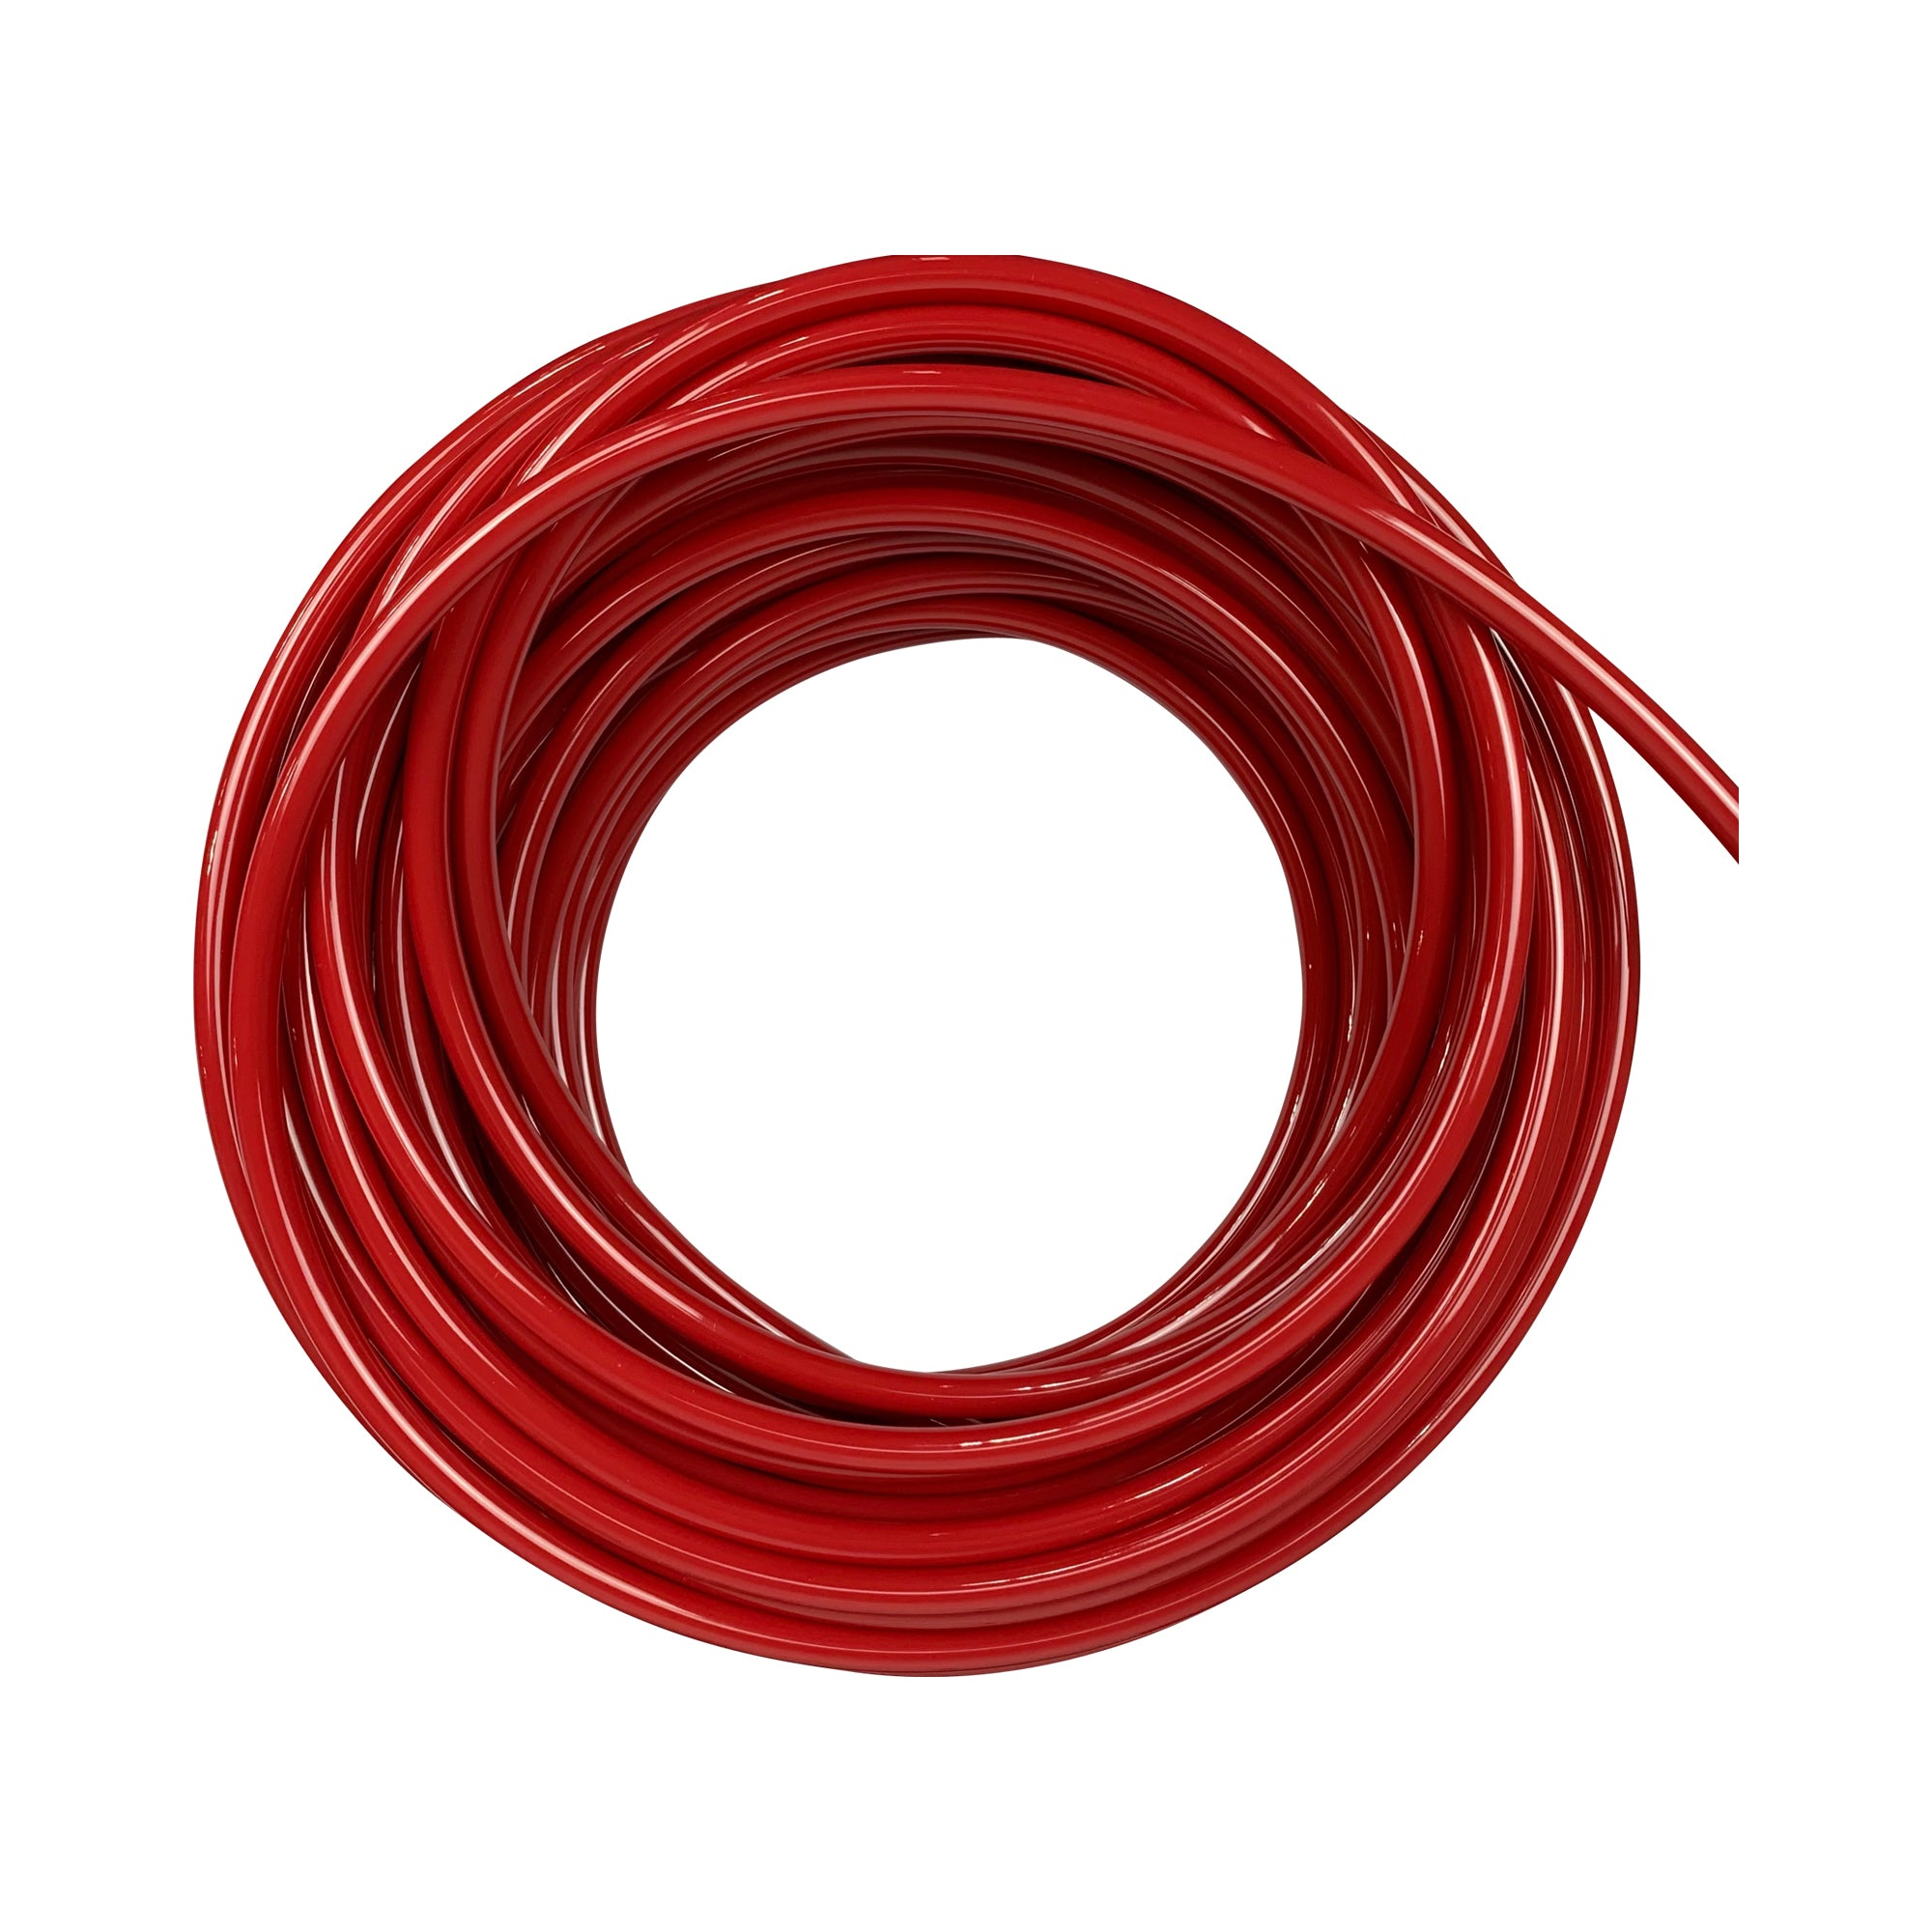 Red plastic tubing compatible for air